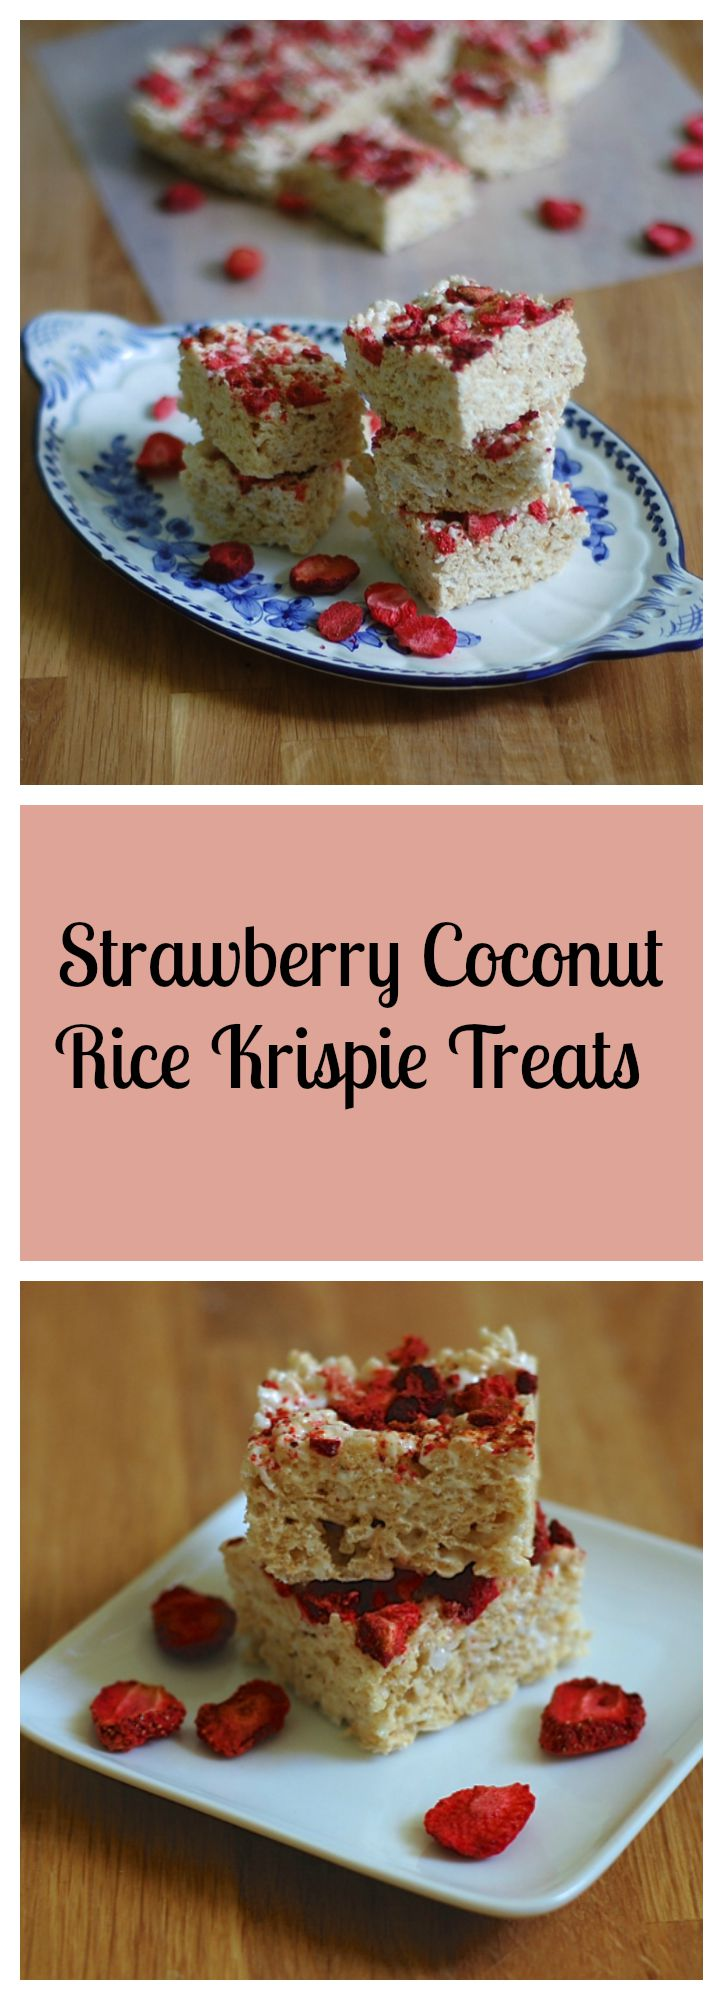 Gluten-Free, Dairy-Free Strawberry Coconut Rice Krispie Treats